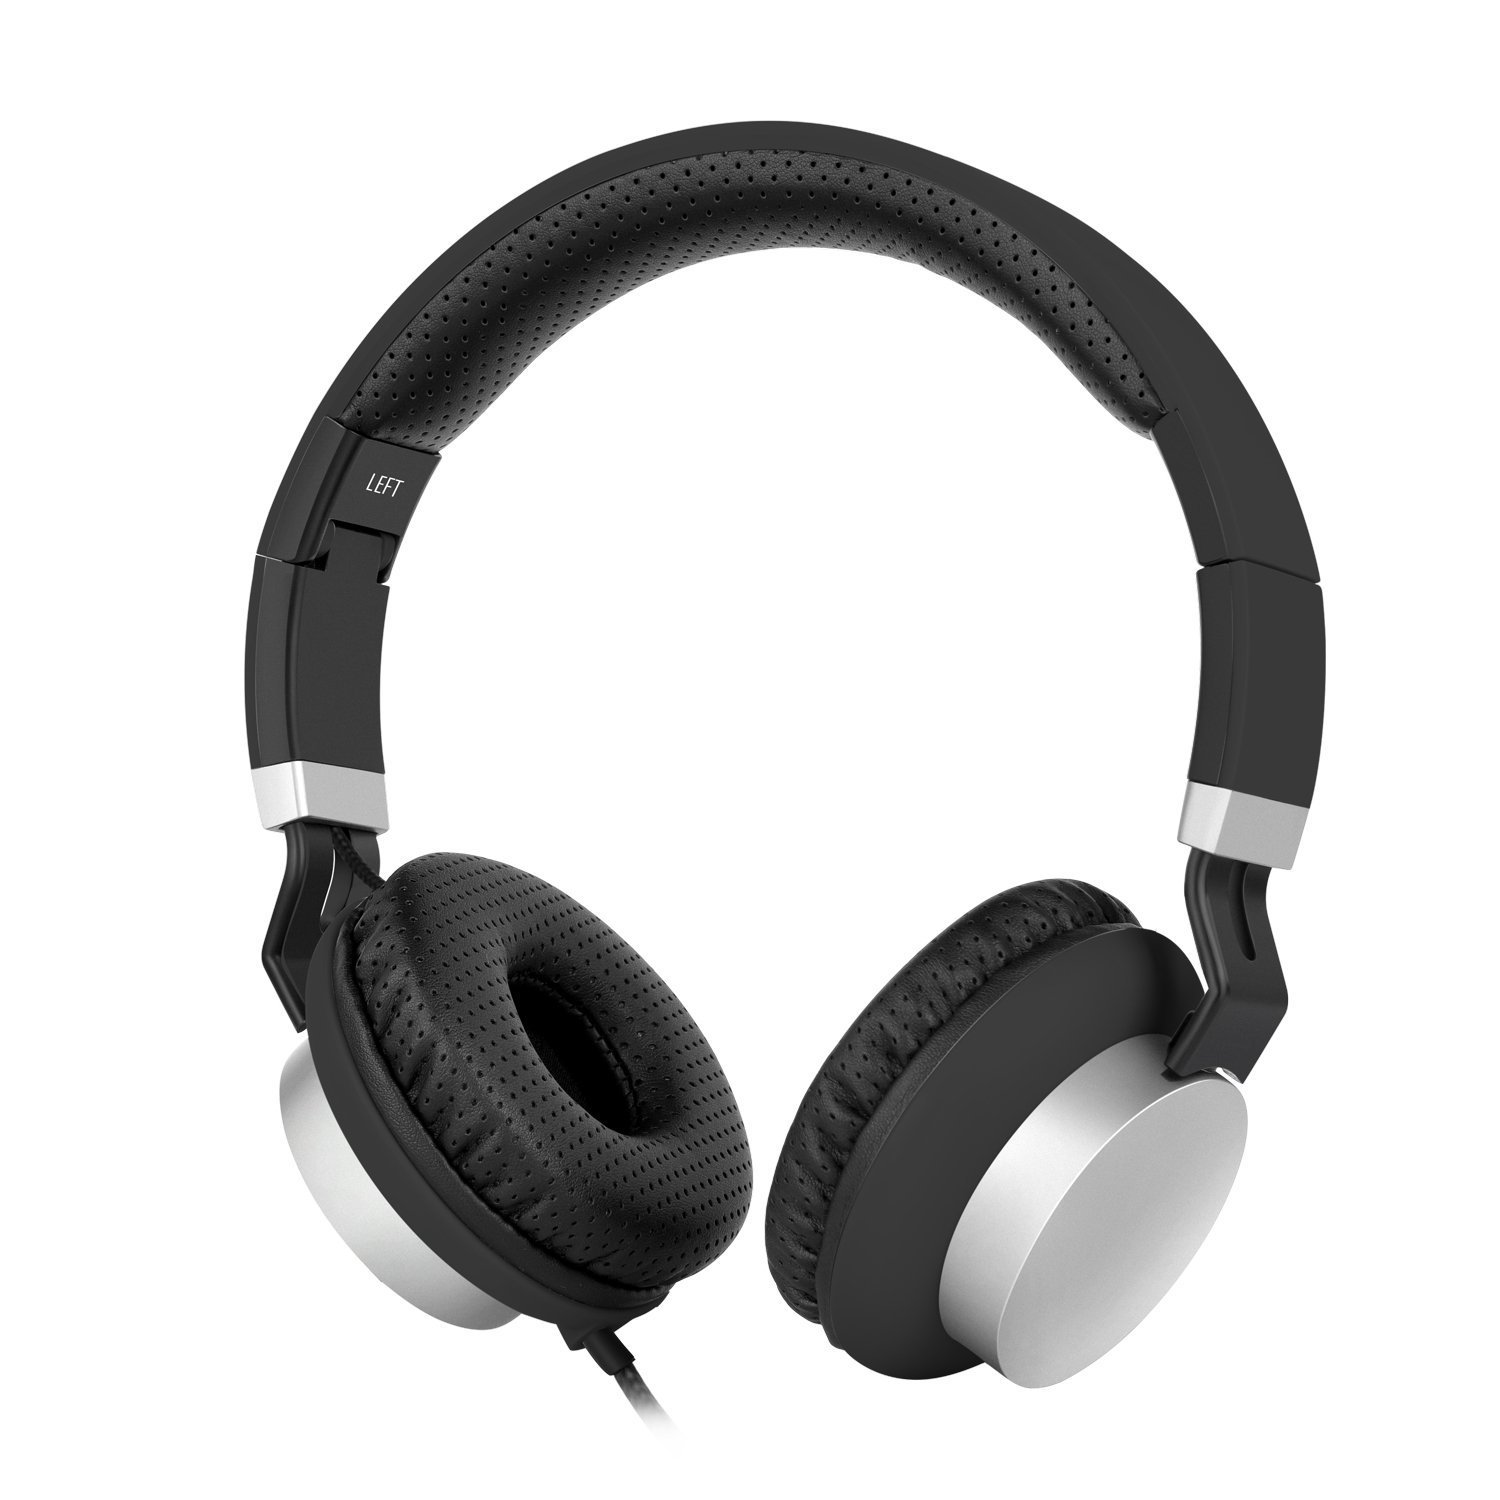 iBzera Over Ear Headphones with Volume Control, Foldable On Ear Headset with Microphone, Comfortable Lightweight Wired Headphones for Computer Laptop iPhone iPod Mp3/4